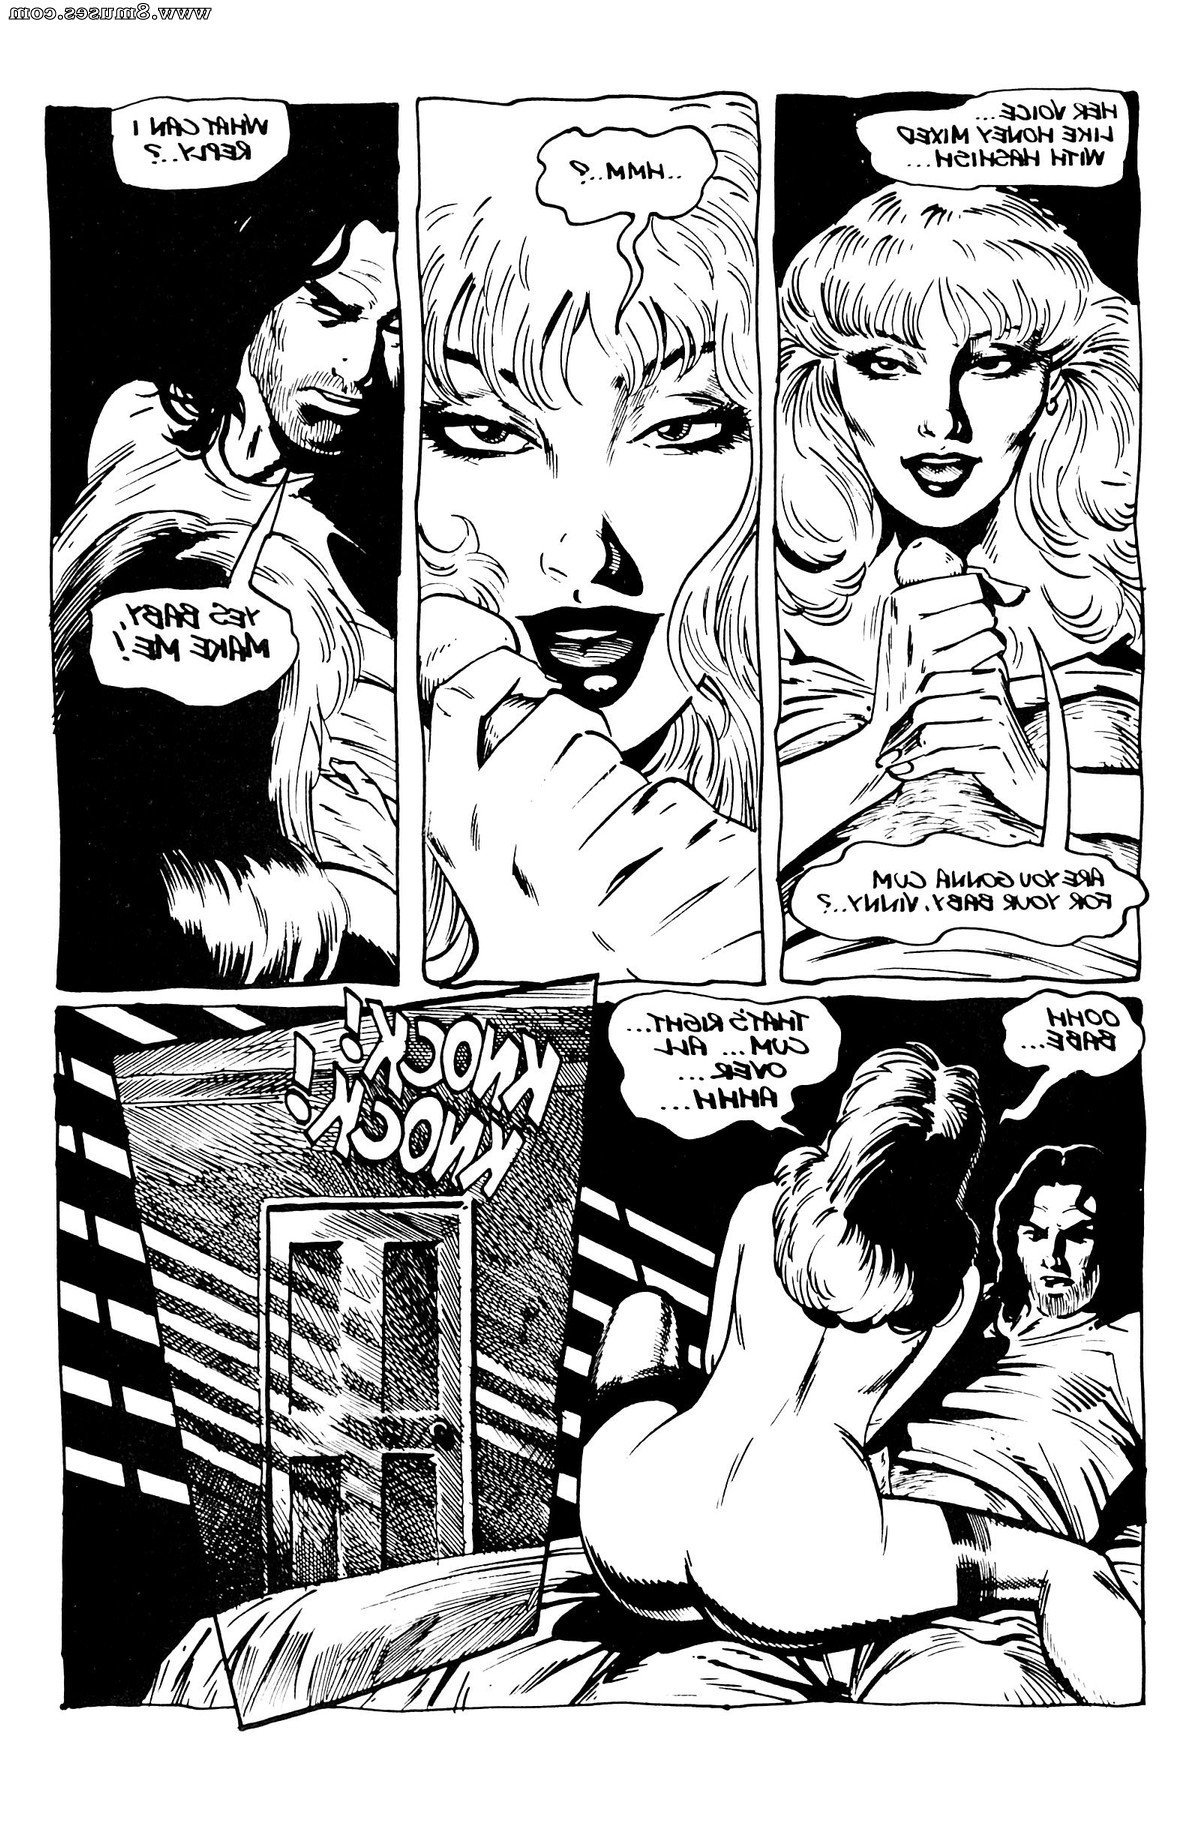 EROS-Comics/100-Degrees-In-The-Shade/Issue-1 100_Degrees_In_The_Shade_-_Issue_1_19.jpg